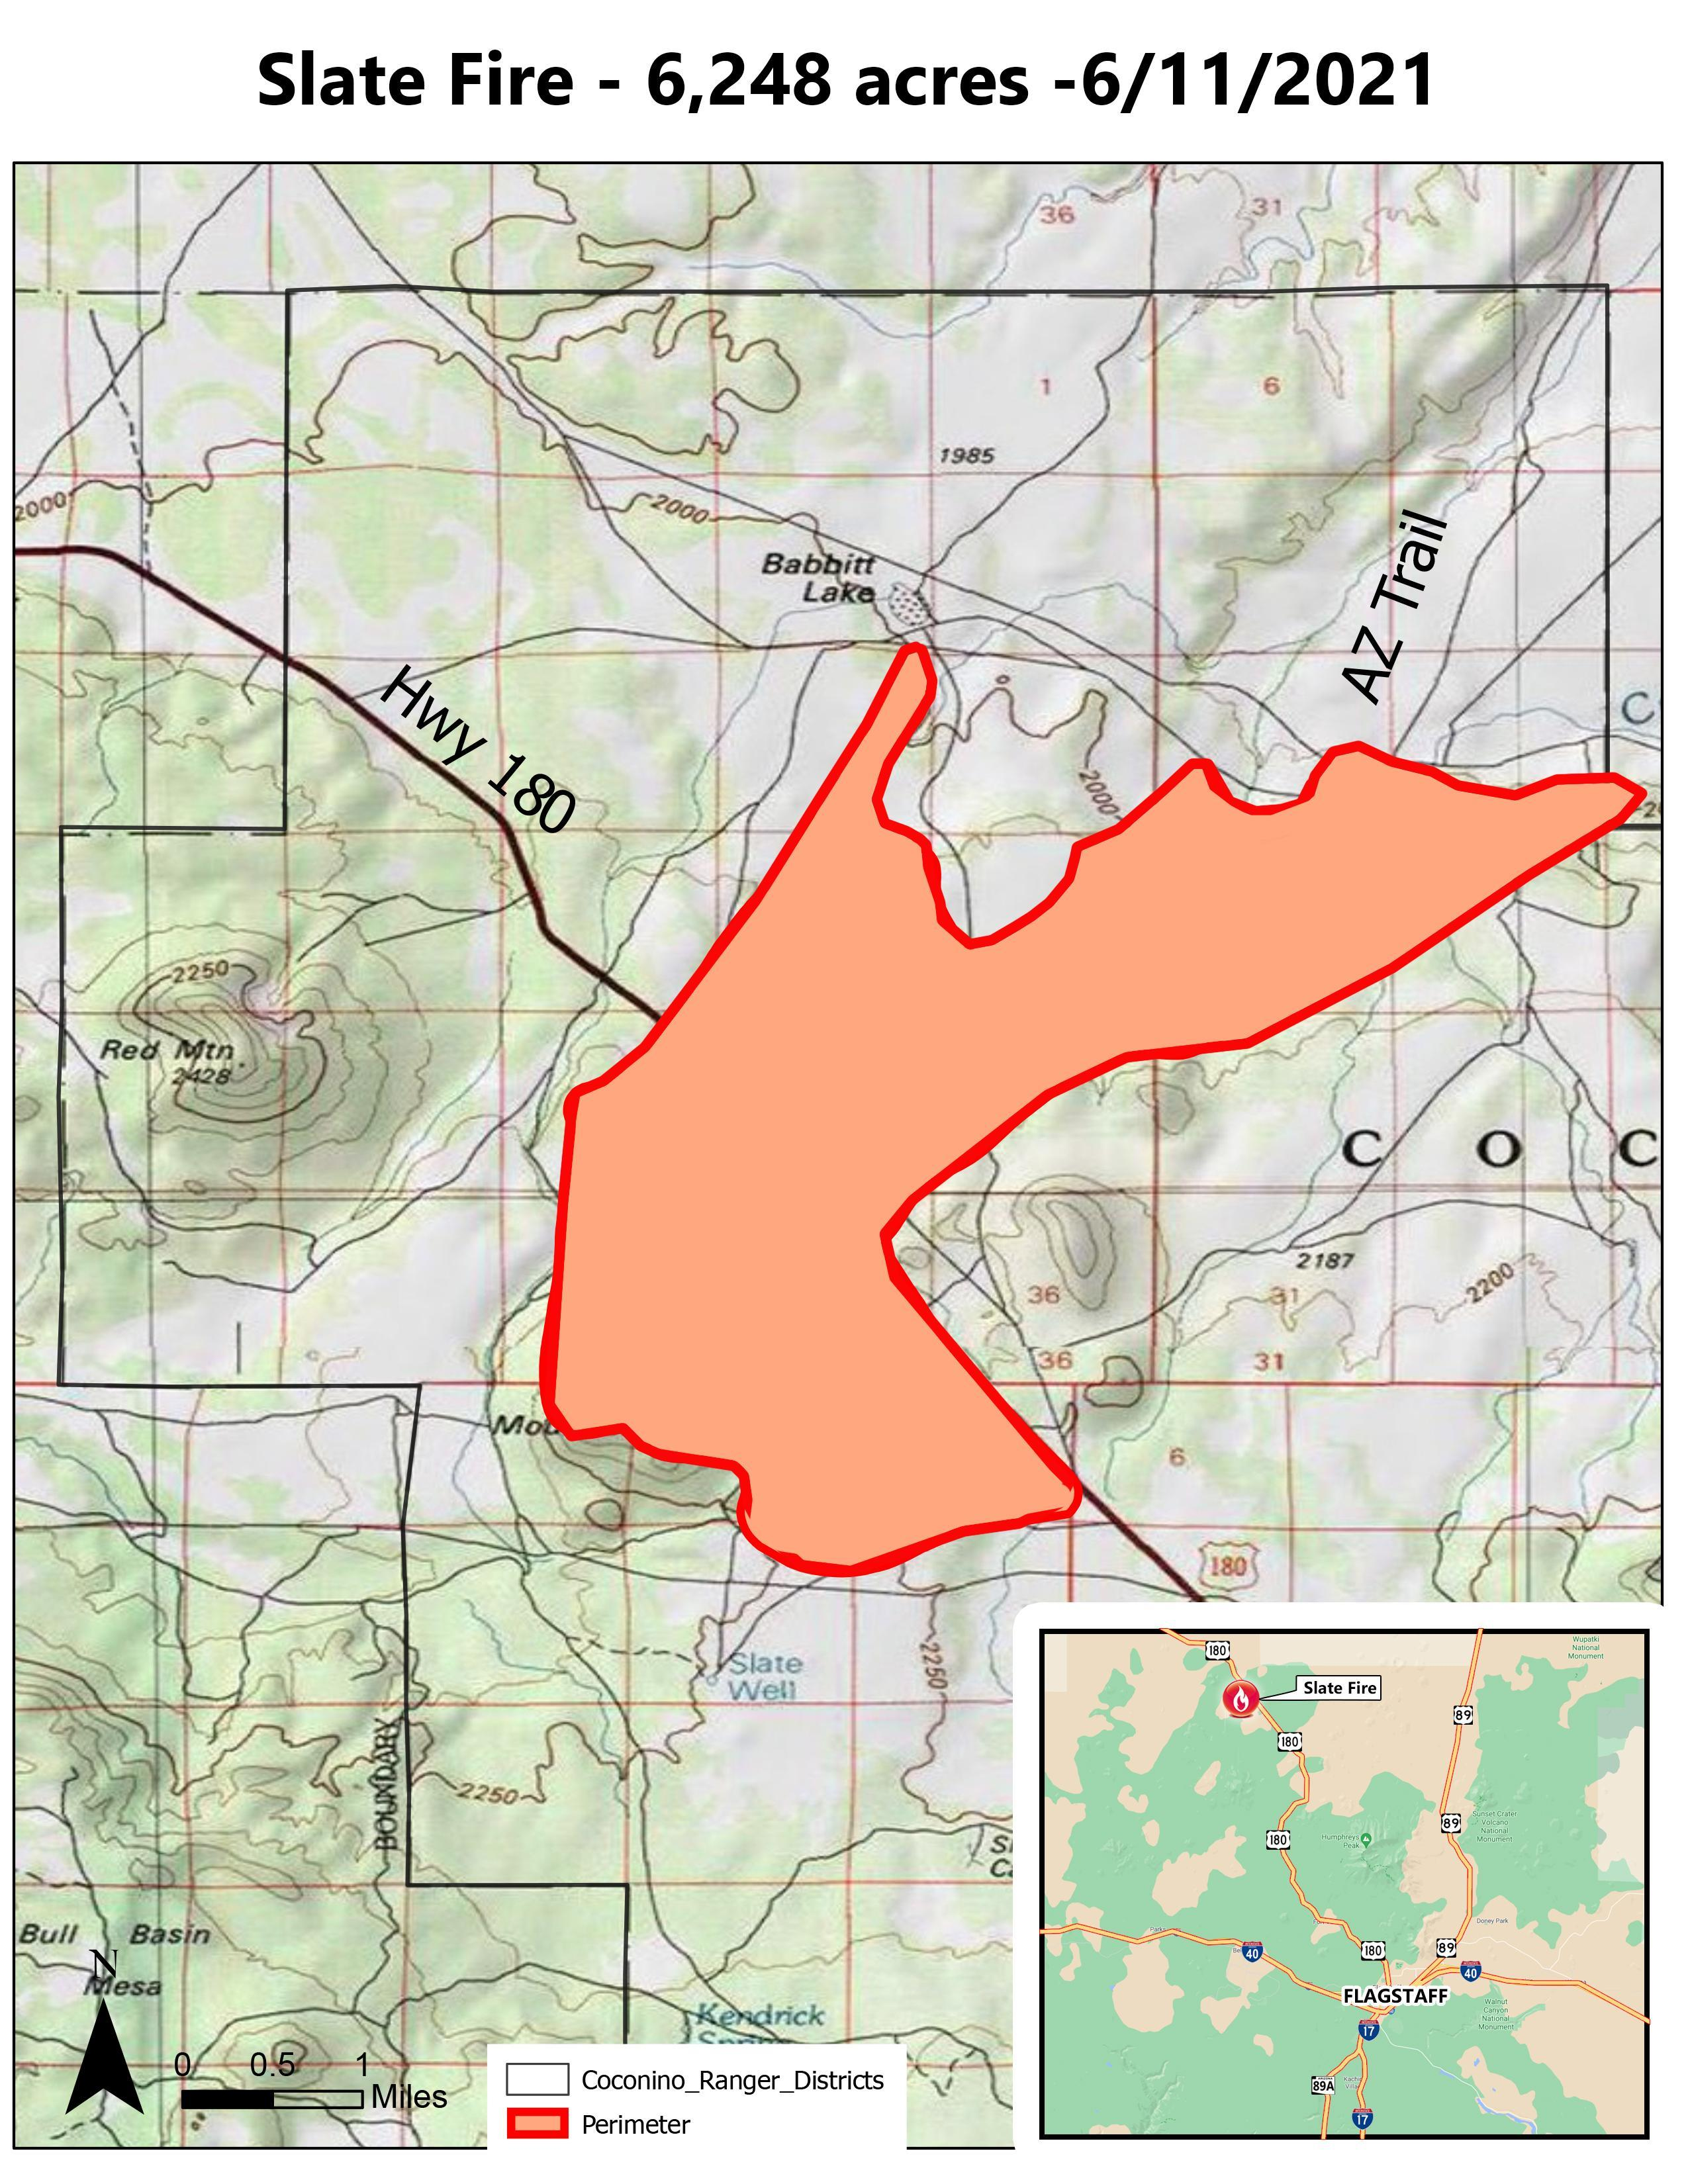 A map of the Slate Fire progress as of 6-11-21.